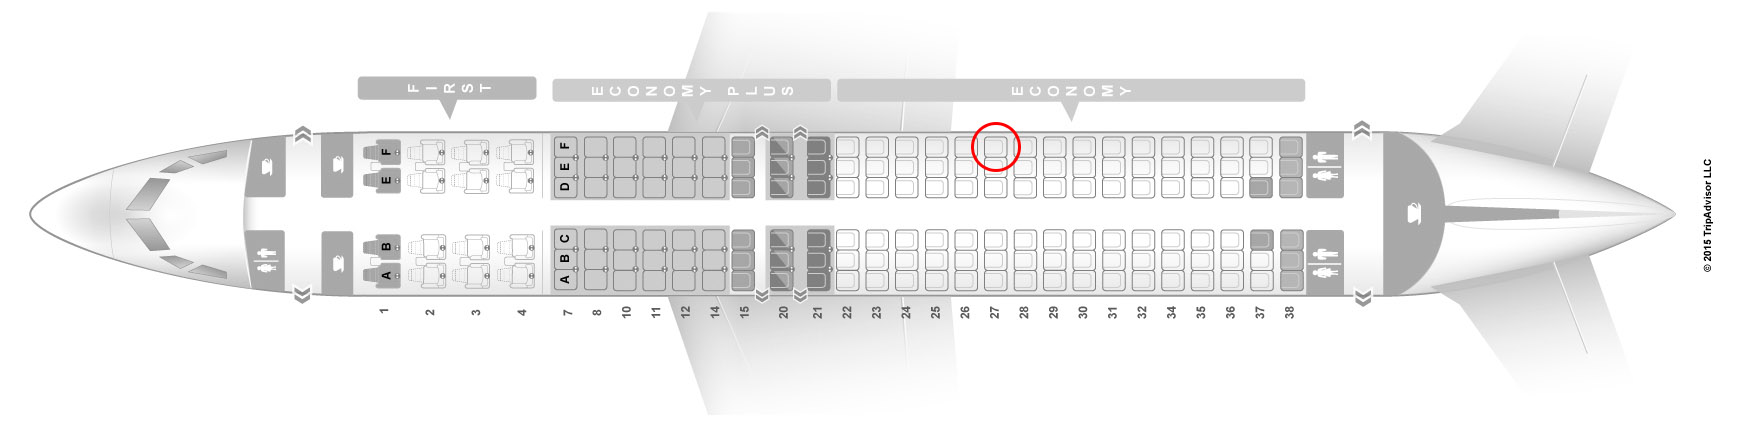 United Airlines 737-800 seat map